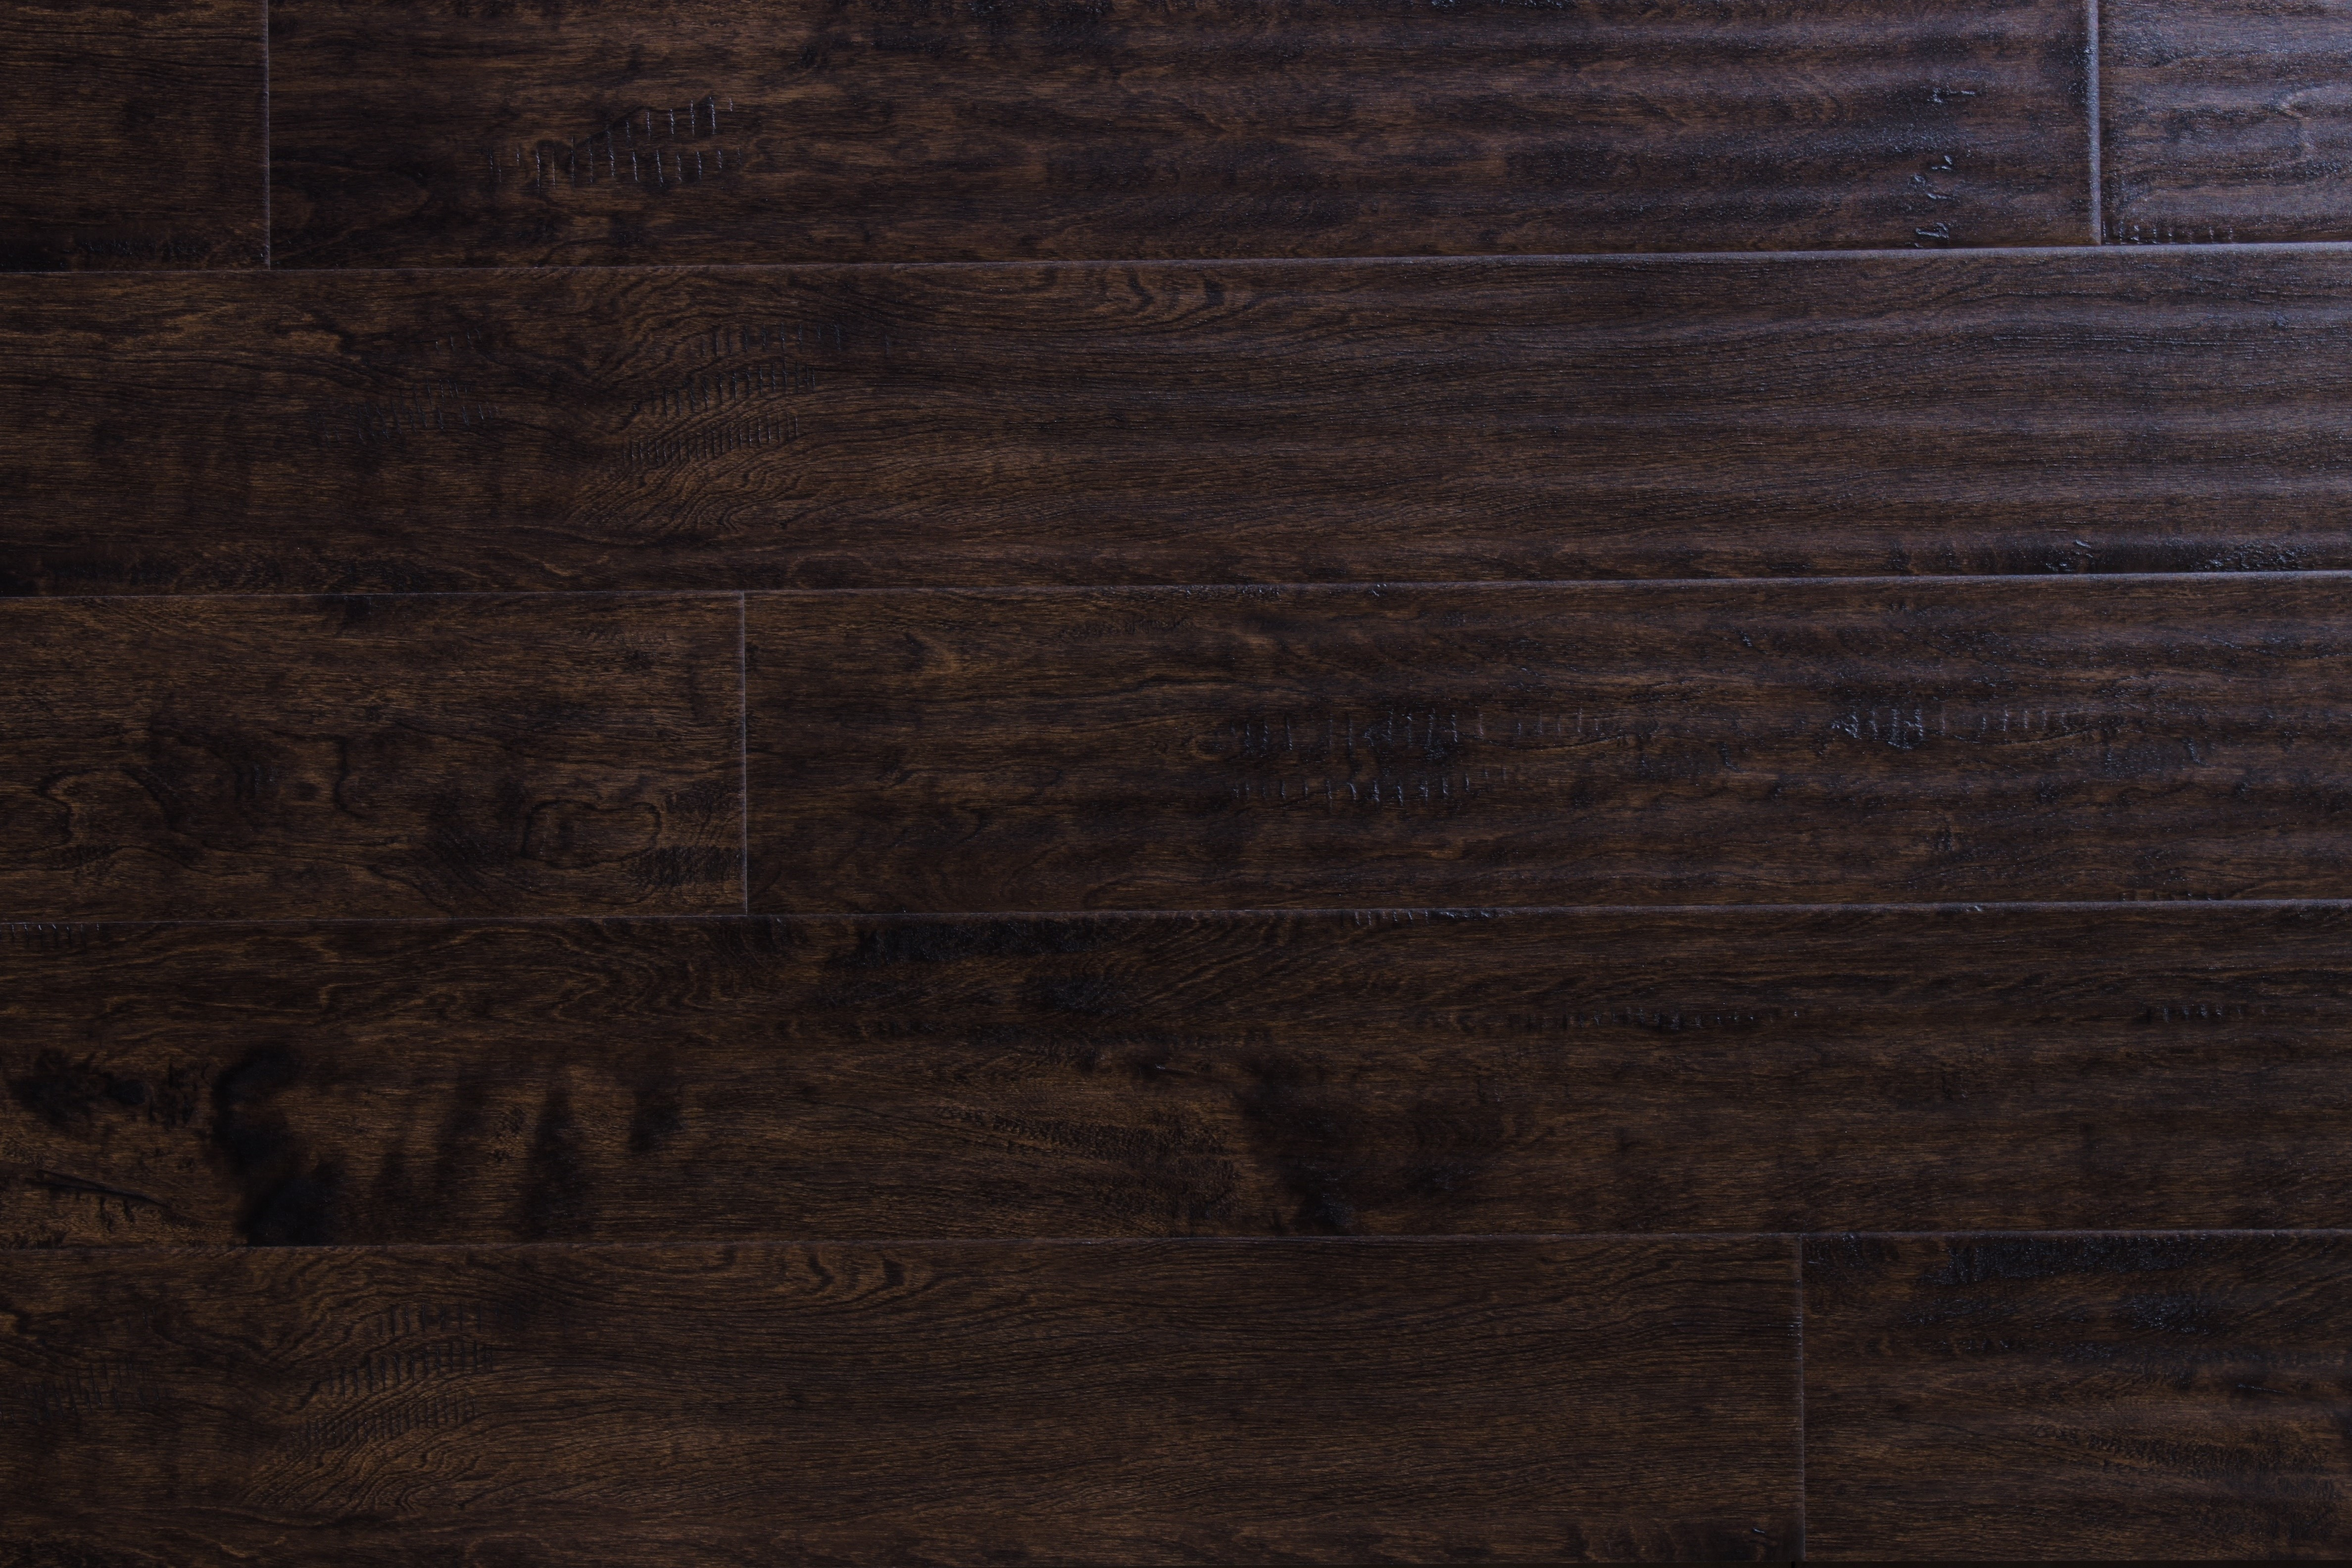 cost of hardwood flooring per square foot canada of wood flooring free samples available at builddirecta pertaining to tailor multi gb 5874277bb8d3c